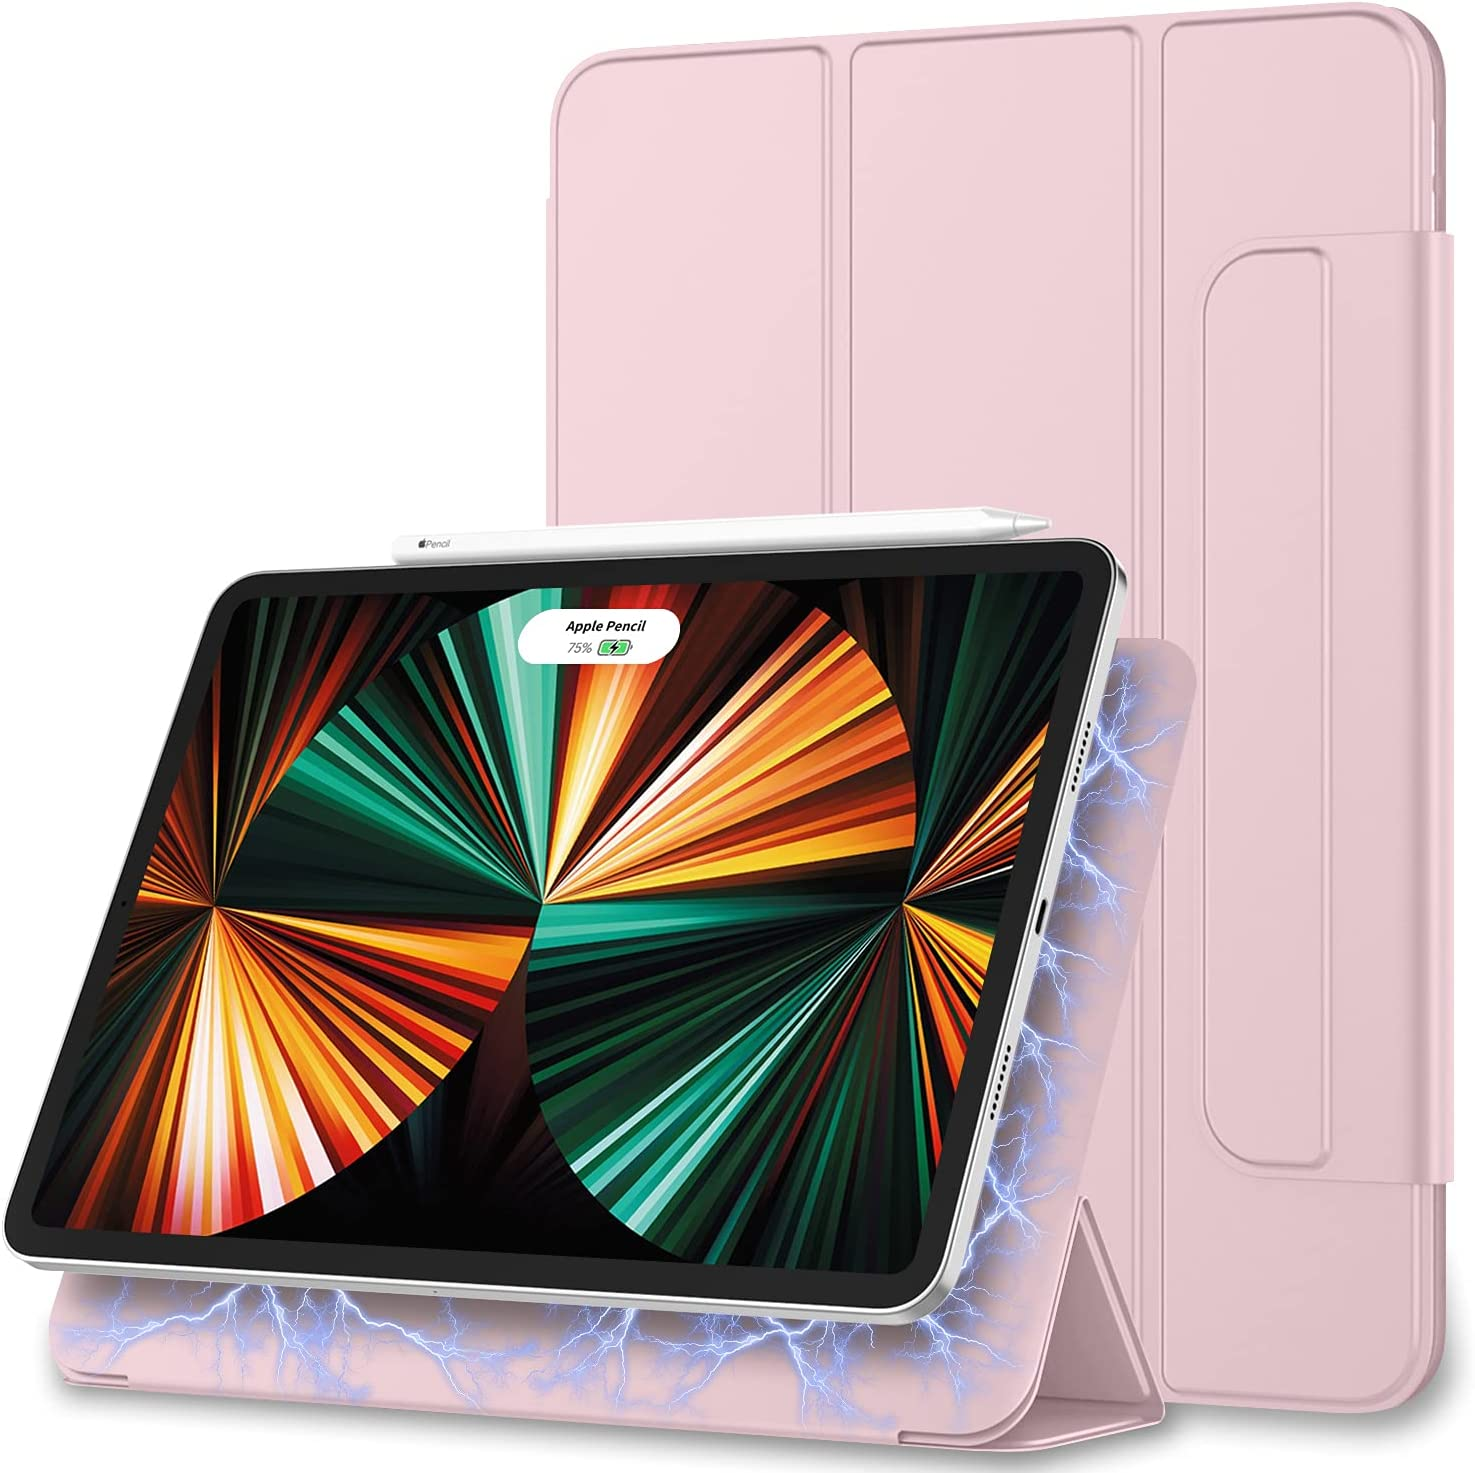 ZryXal iPad Pro 12.9 Case 2021(5th Generation), Rebound Magnetic Smart Case Cover with Convenient Magnetic Attachment and Auto Sleep/Wake Feature for 2021 iPad Pro 12.9 (Pink)